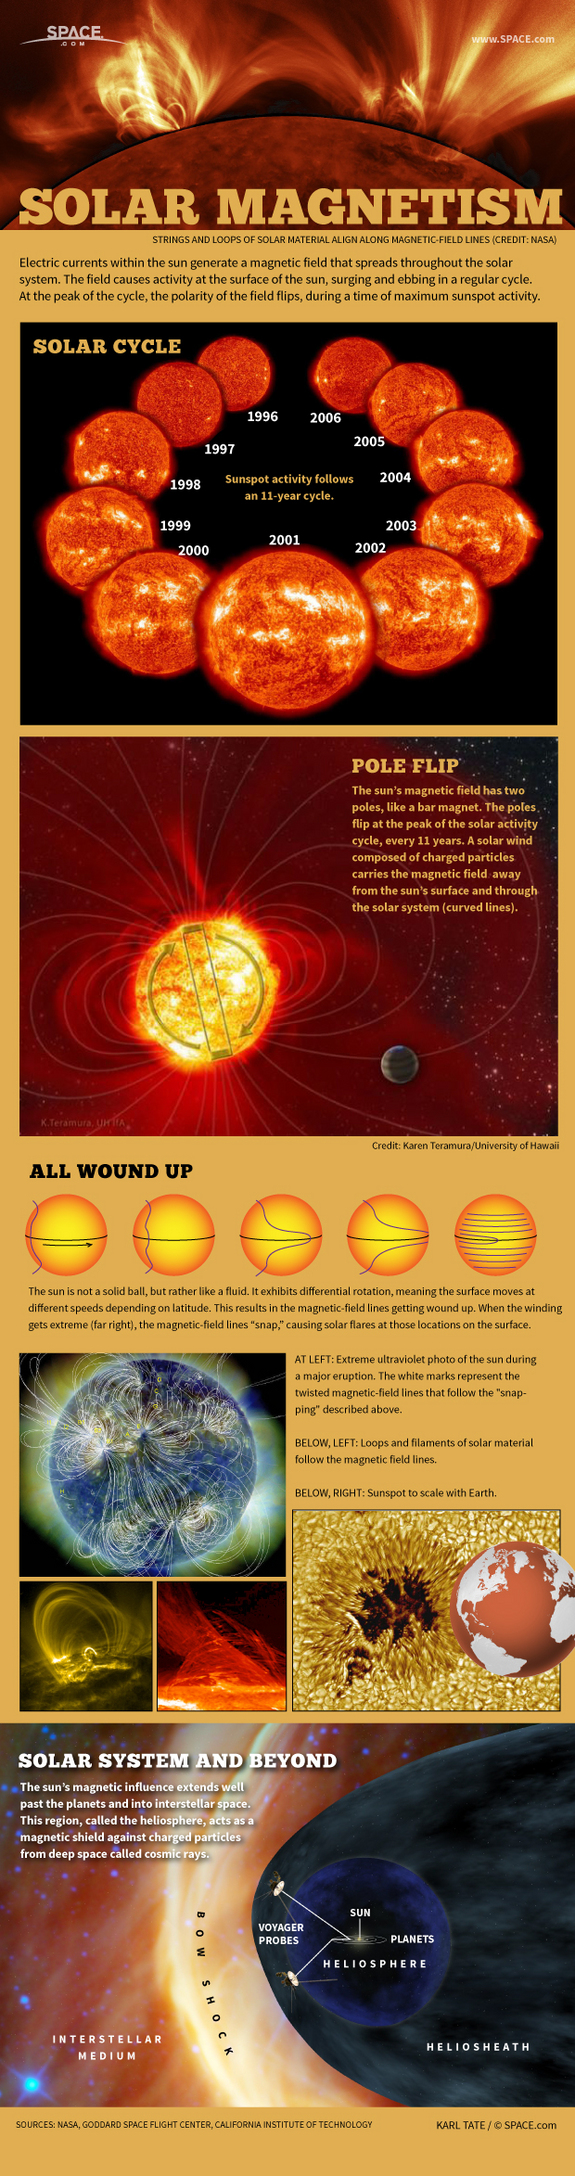 Find out how the sun's magnetic field works in this SPACE.com infographic.